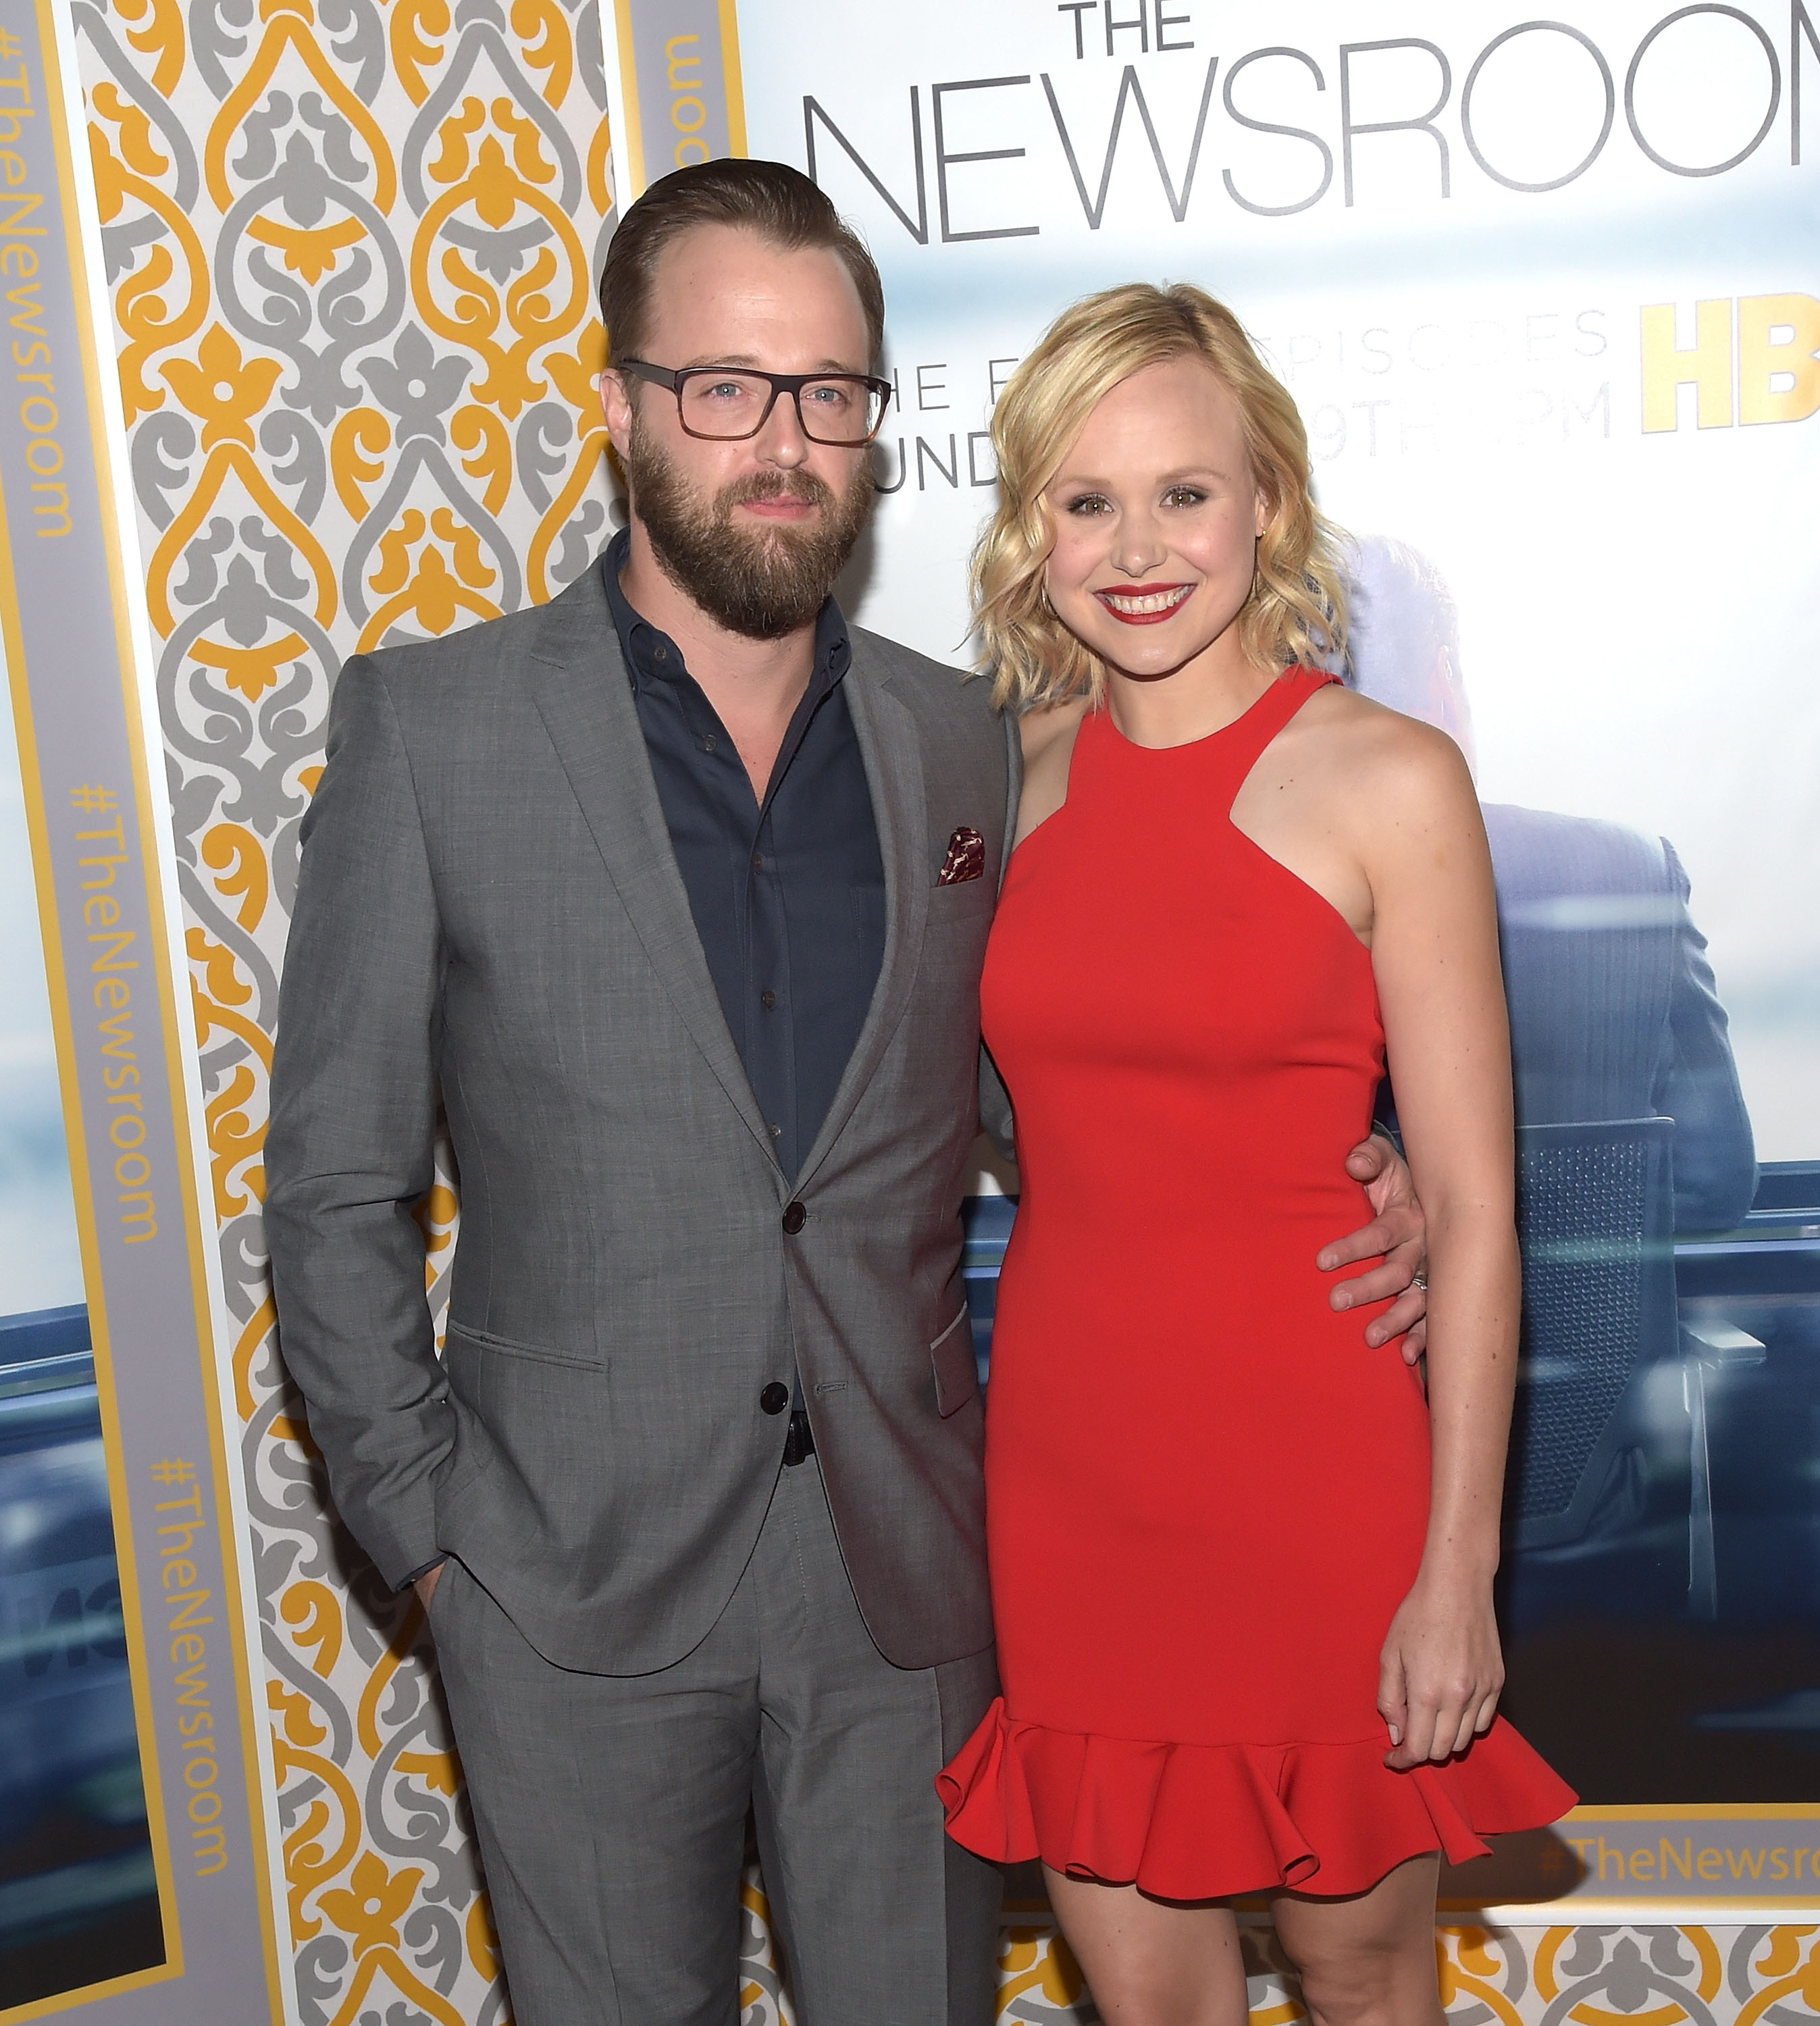 Alison Pill Hot the newsroom's' alison pill gets engaged (photo) | access online